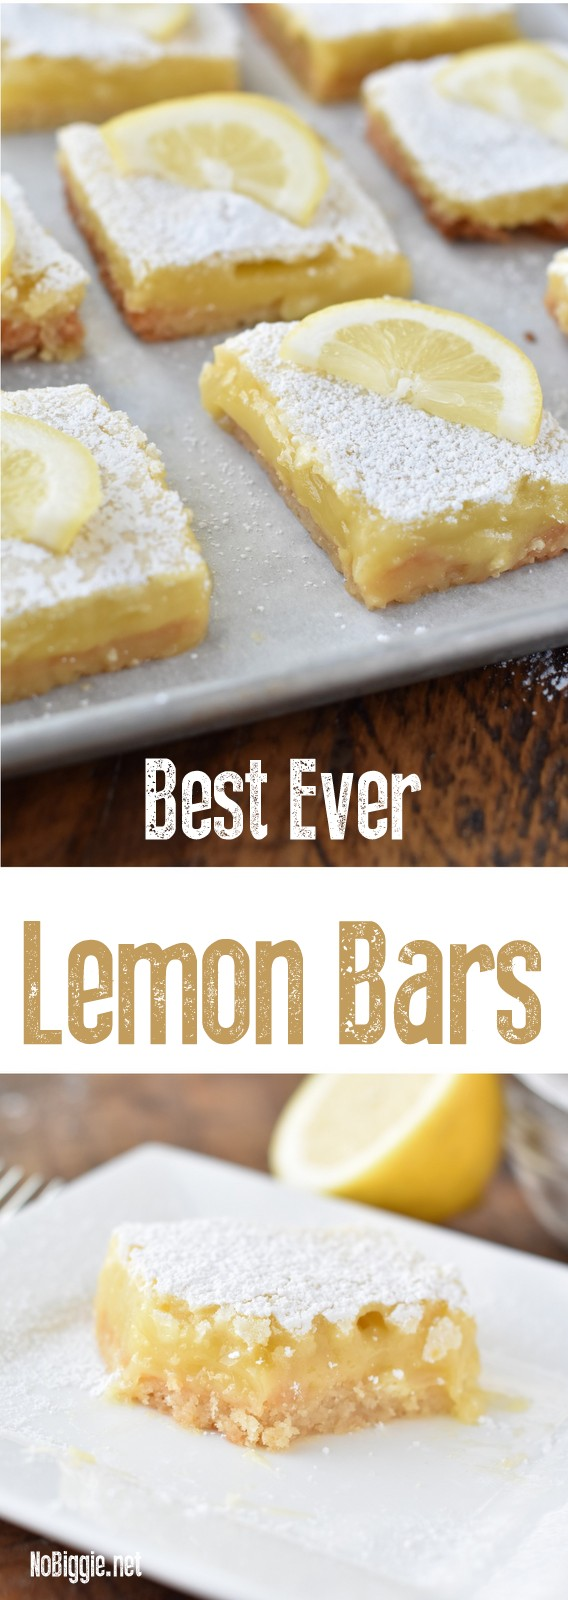 Best Ever Lemon Bars Watch the video | NoBiggie.net